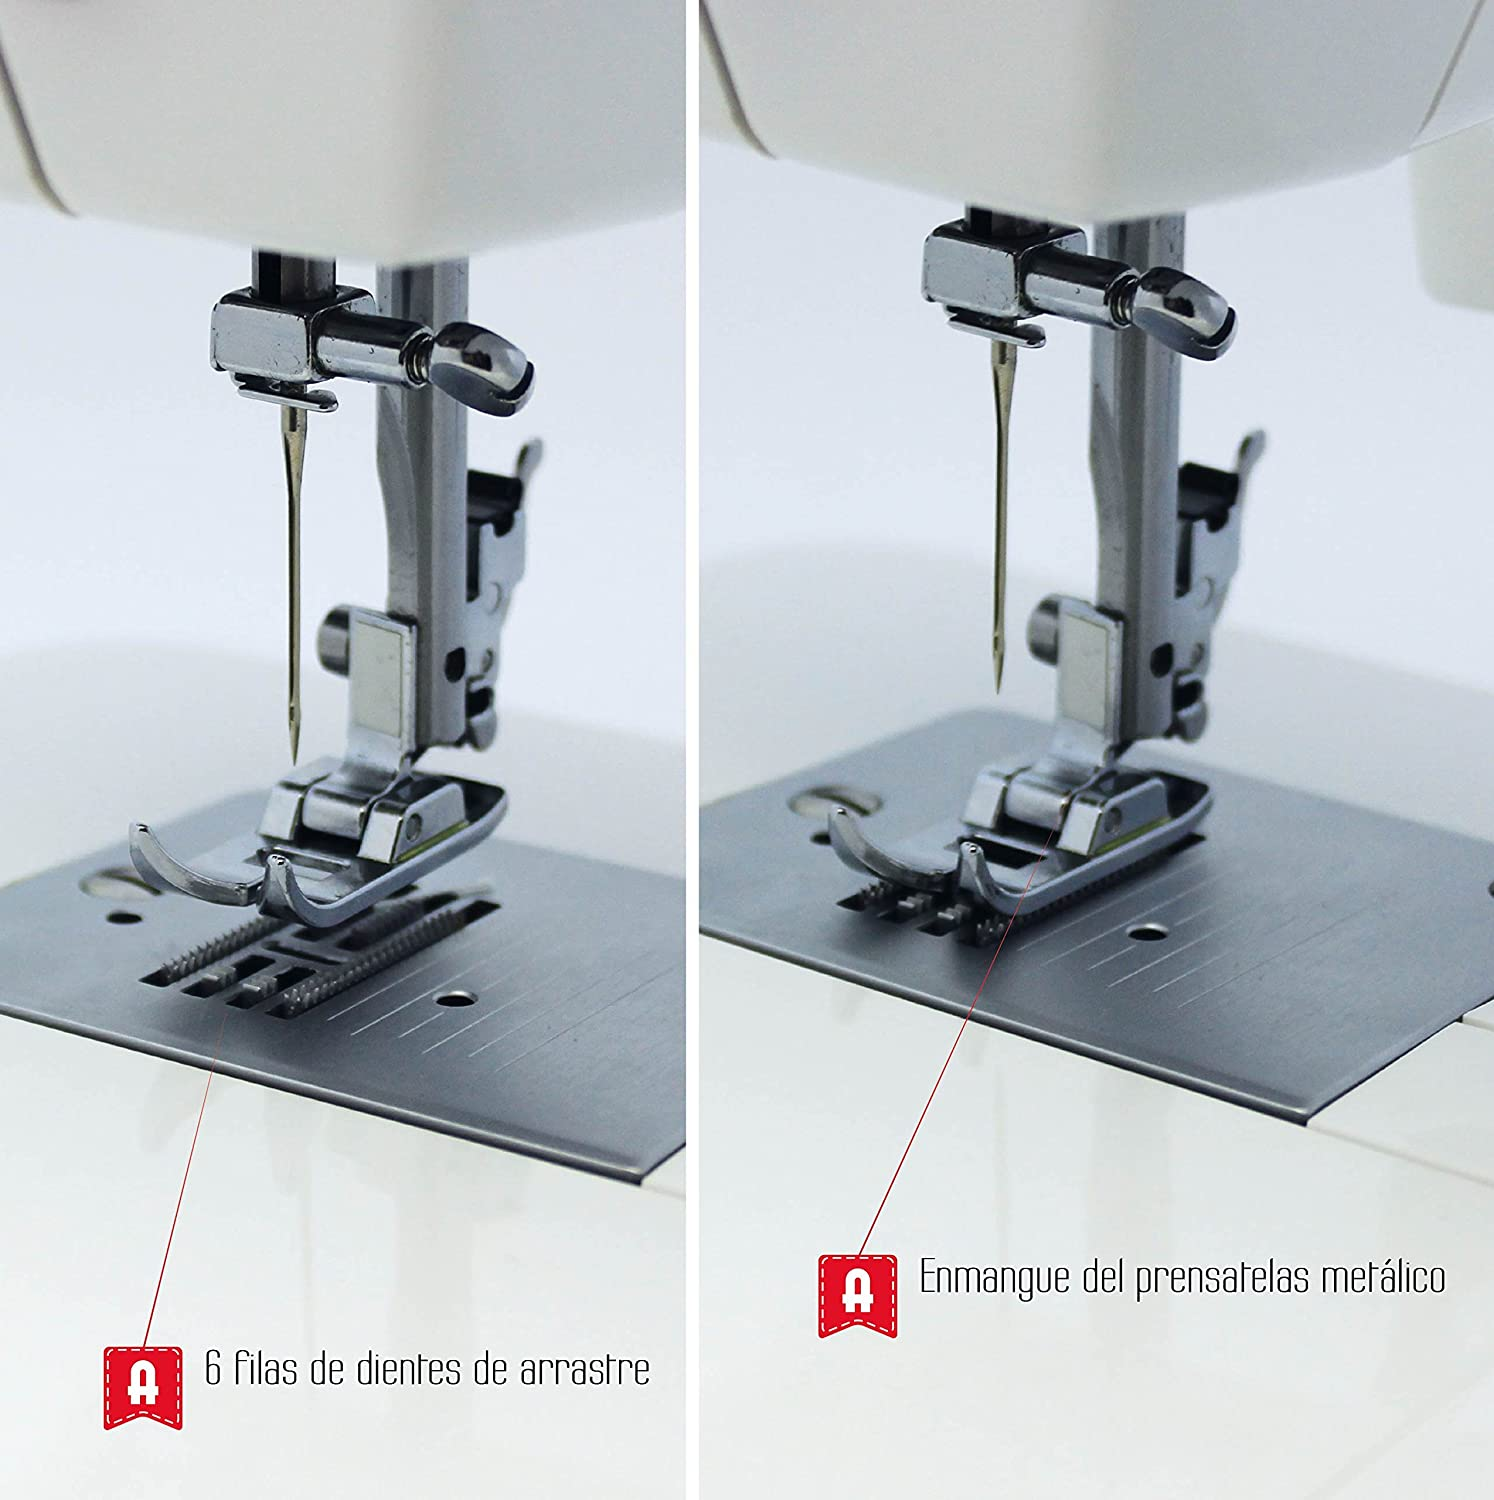 Alfa Style Sewing Machine Instructions May Not Be In English One